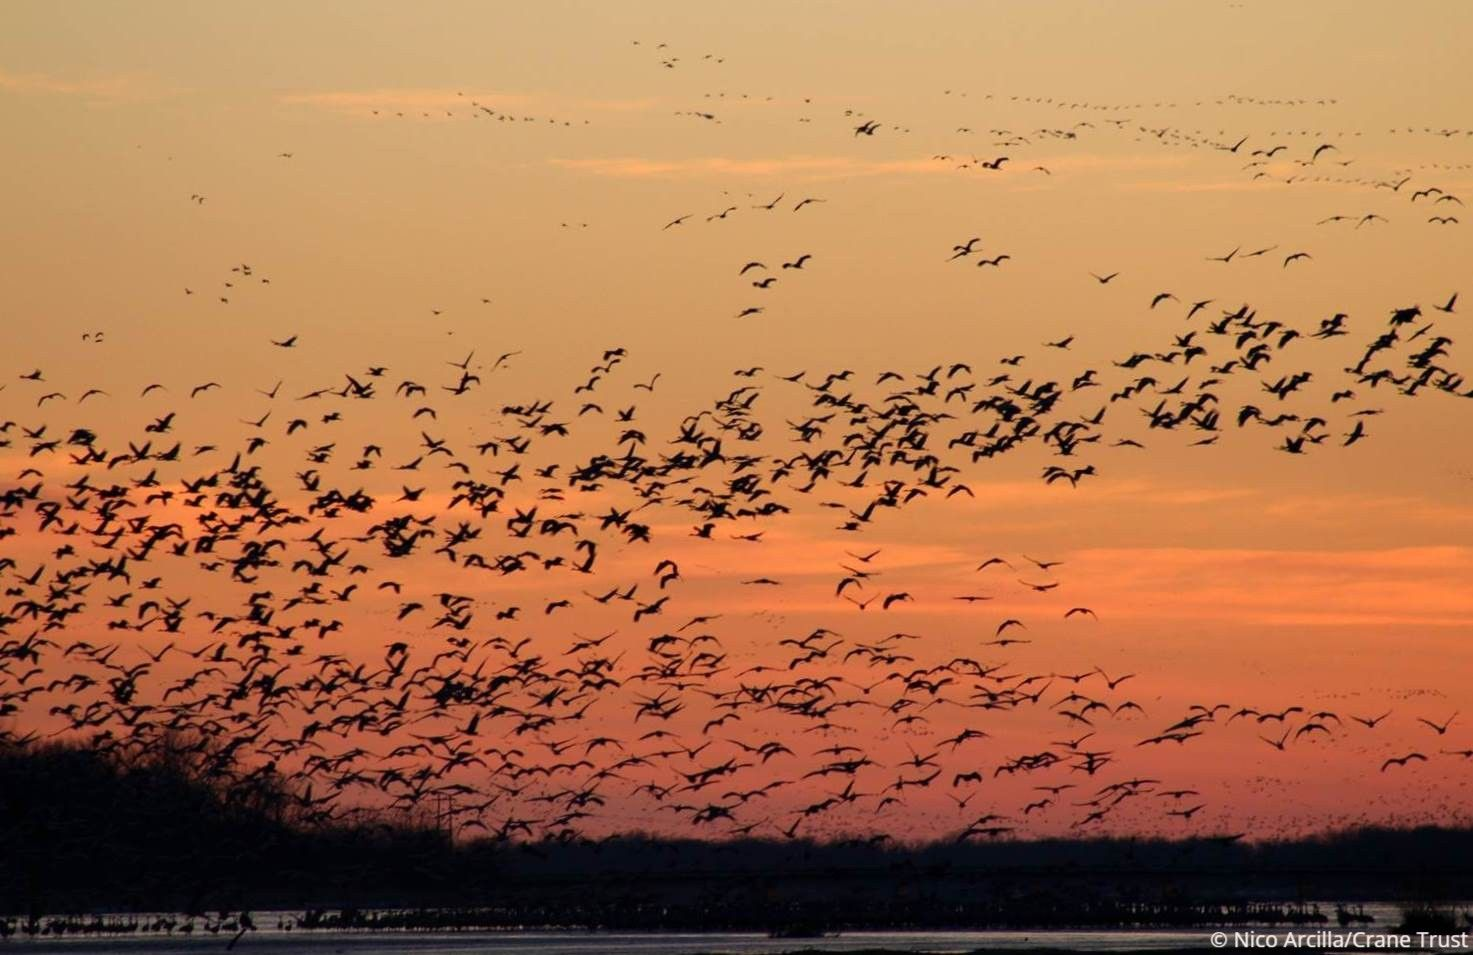 Crane Trust Offering Virtual Tours of Sandhill Crane Migration